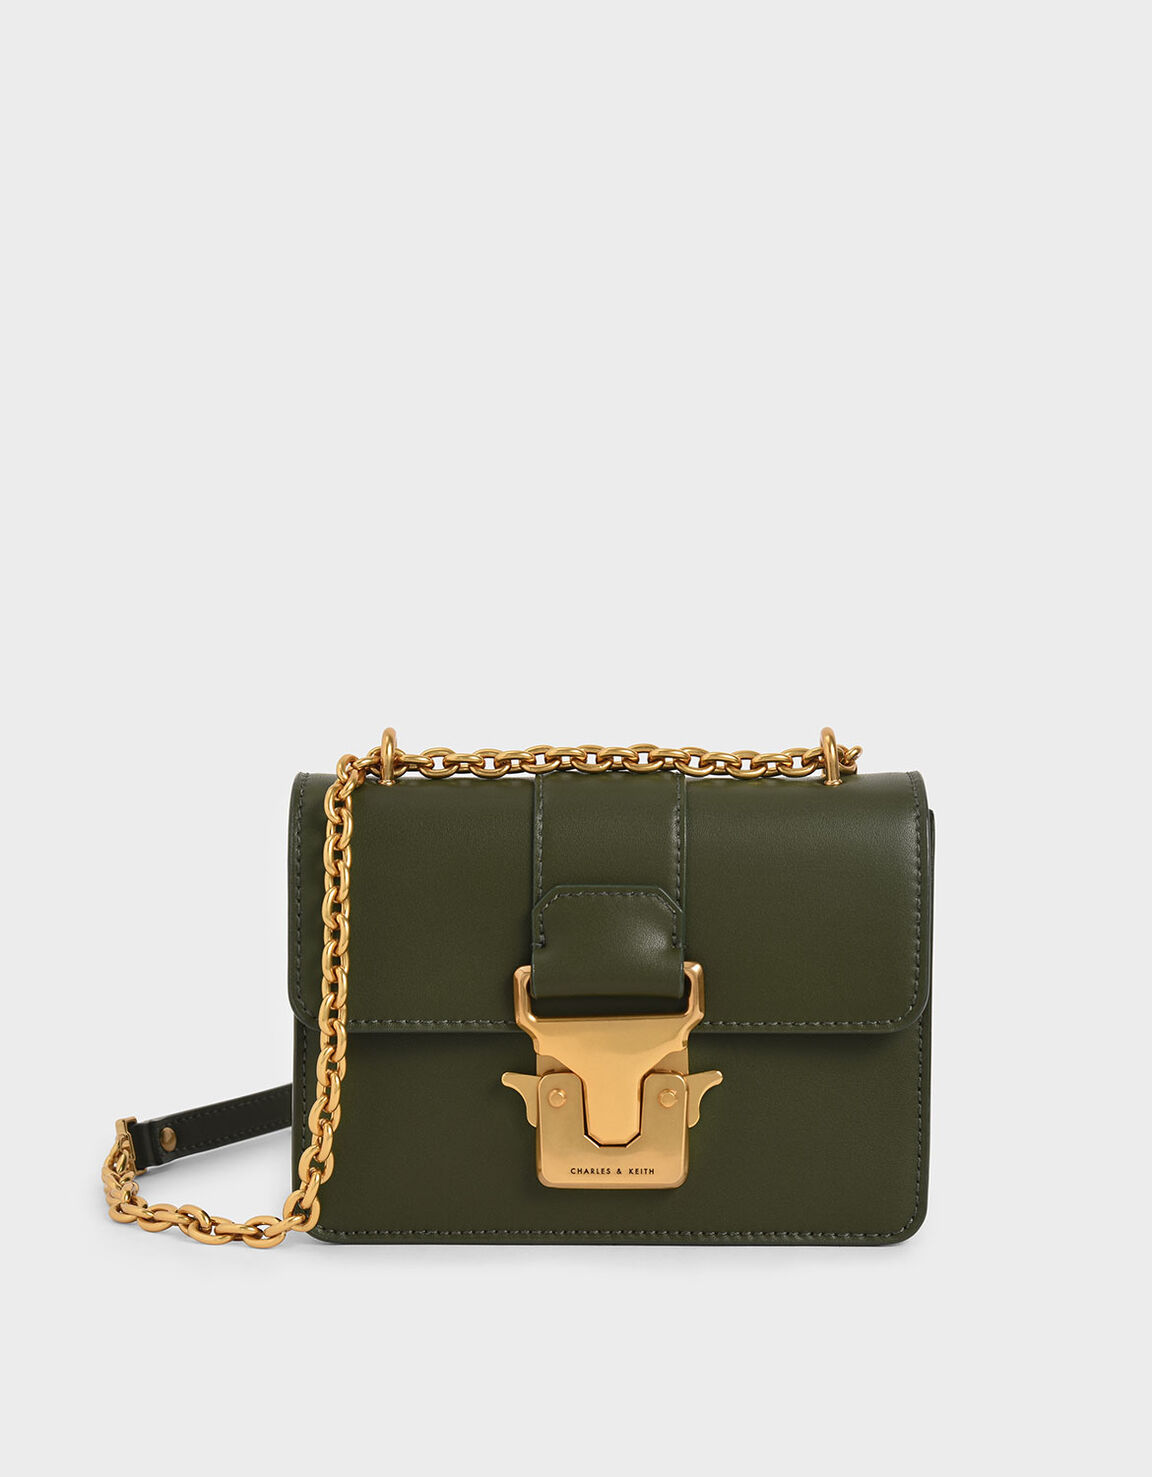 Brand New Charles and Keith Push Lock Front Flap Shoulder Bag with Gold Chain